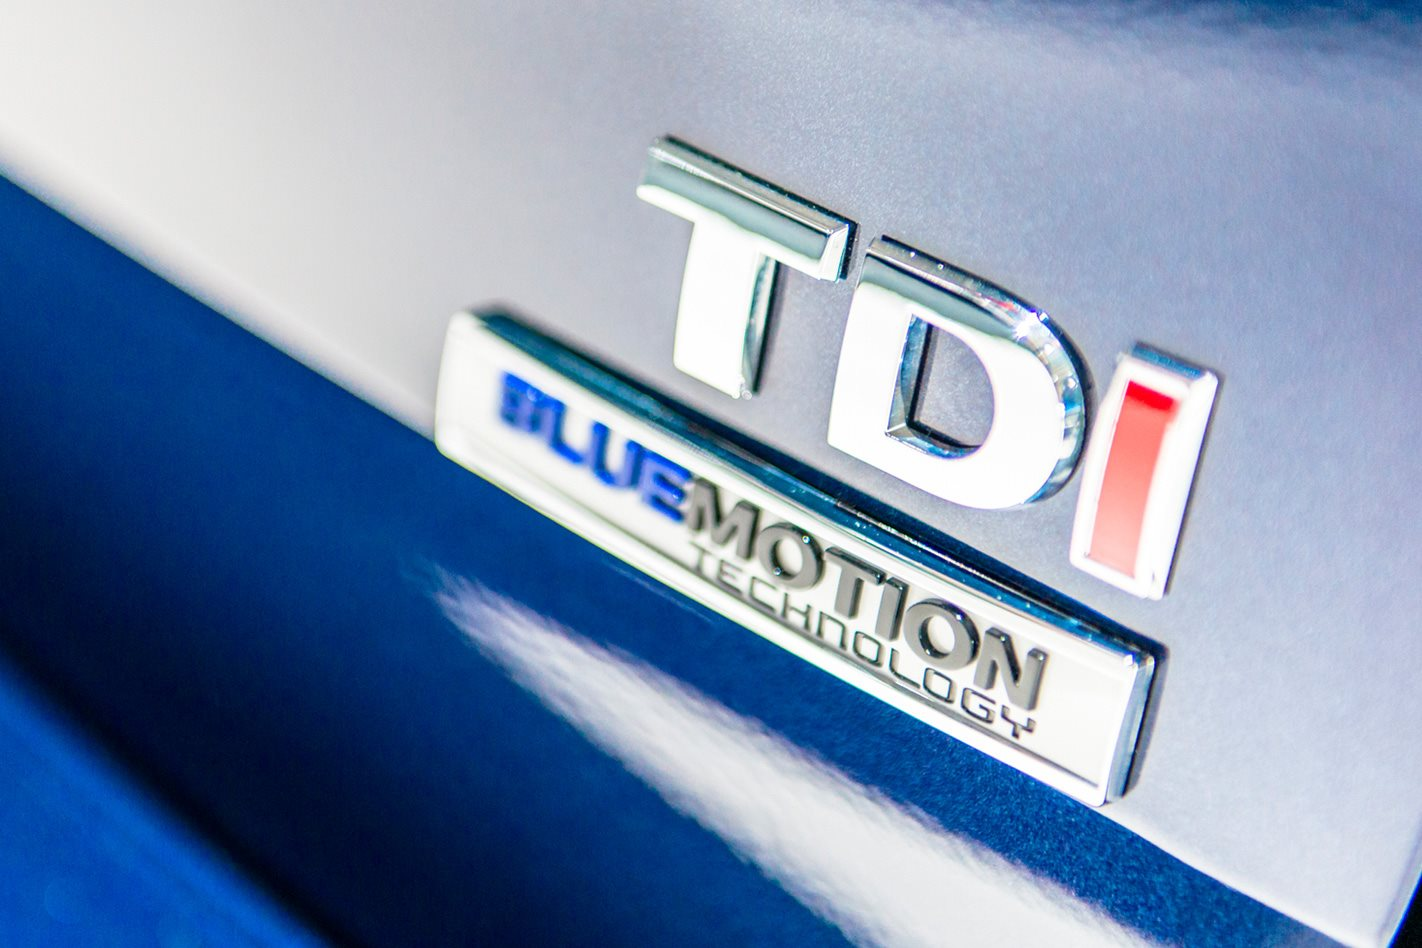 Forgiven and forgotten in the wake of Dieselgate?